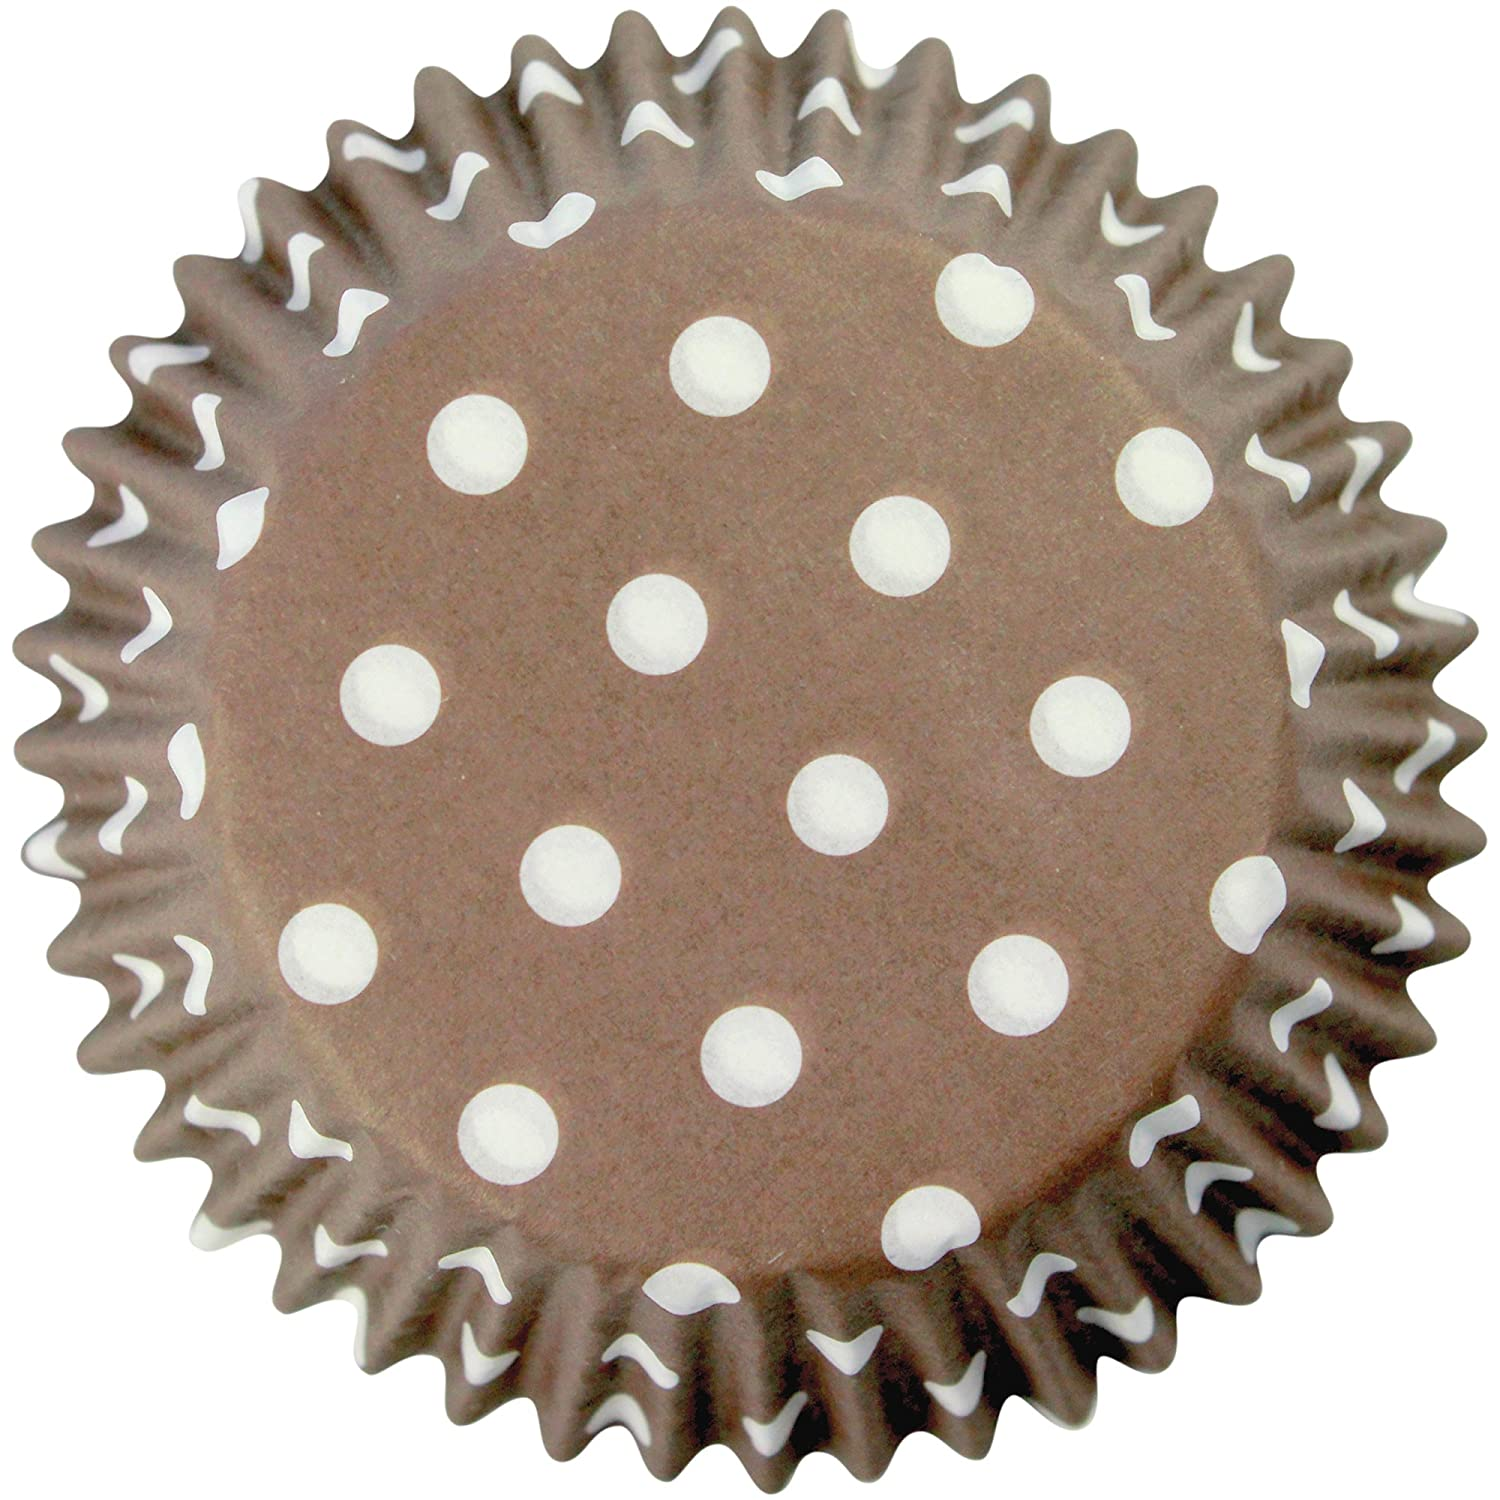 PME Brown Polka Dots Paper Baking Cases for Cupcakes, Standard Size, Pack of 60 Knightsbridge PME BC732